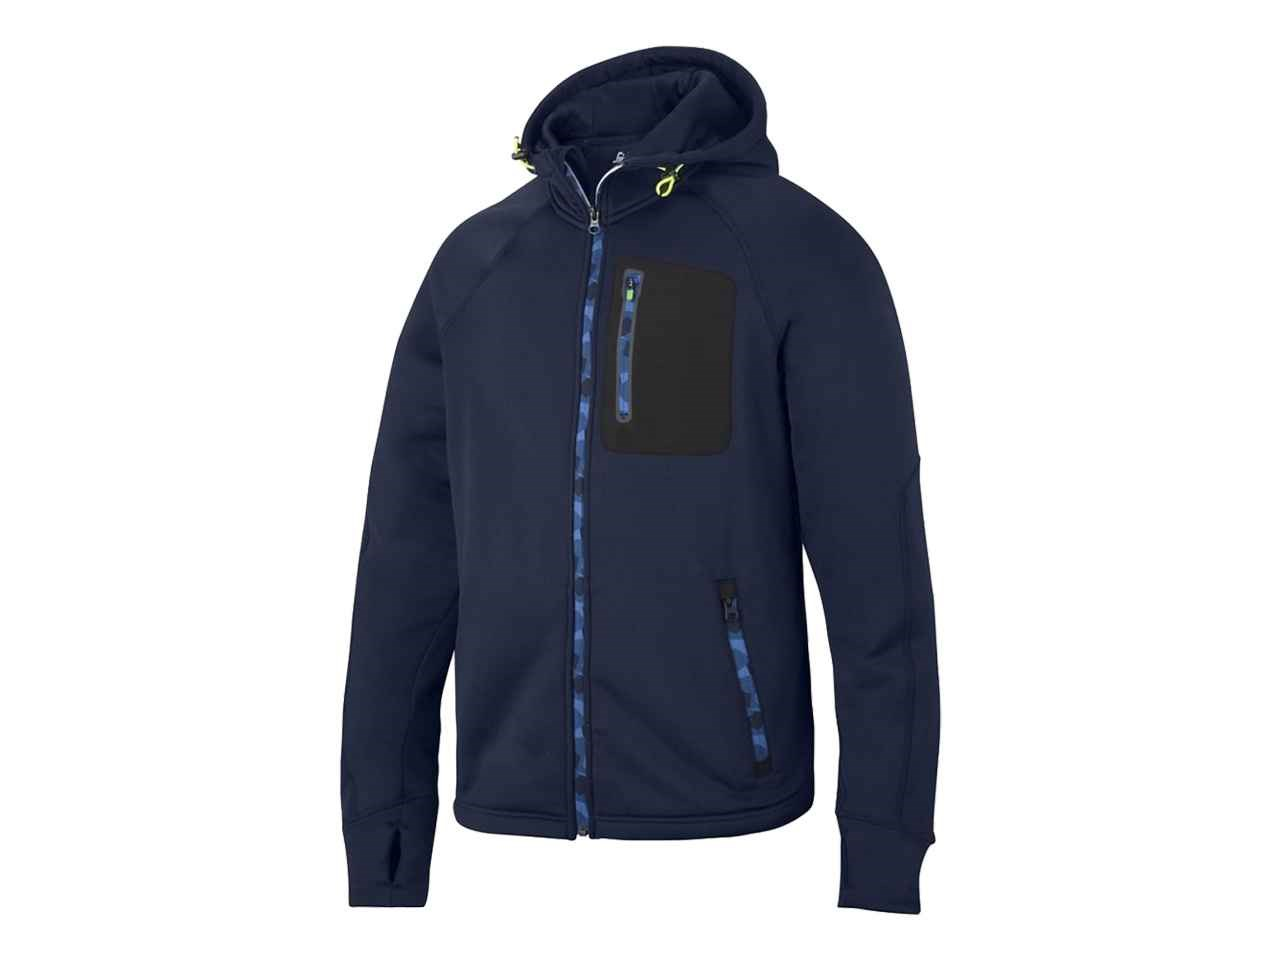 80715cd9 remaining at this price. Snickers 80009504007 Flexiwork Stretch Fleece ...